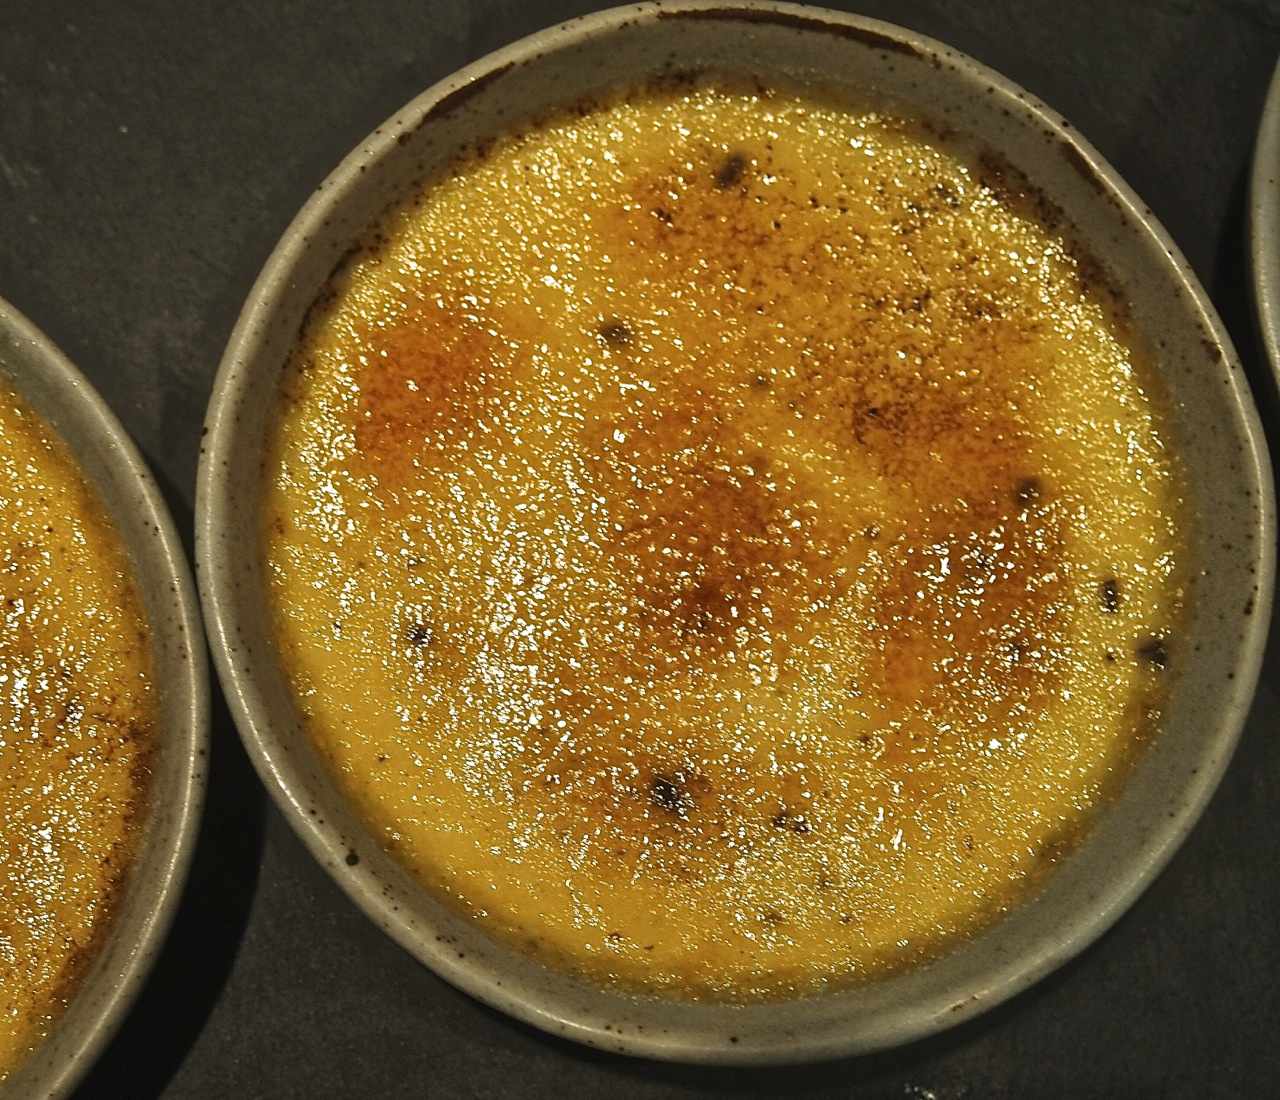 Epicurious Generations Creme Brulee With Sea Salt Chocolate